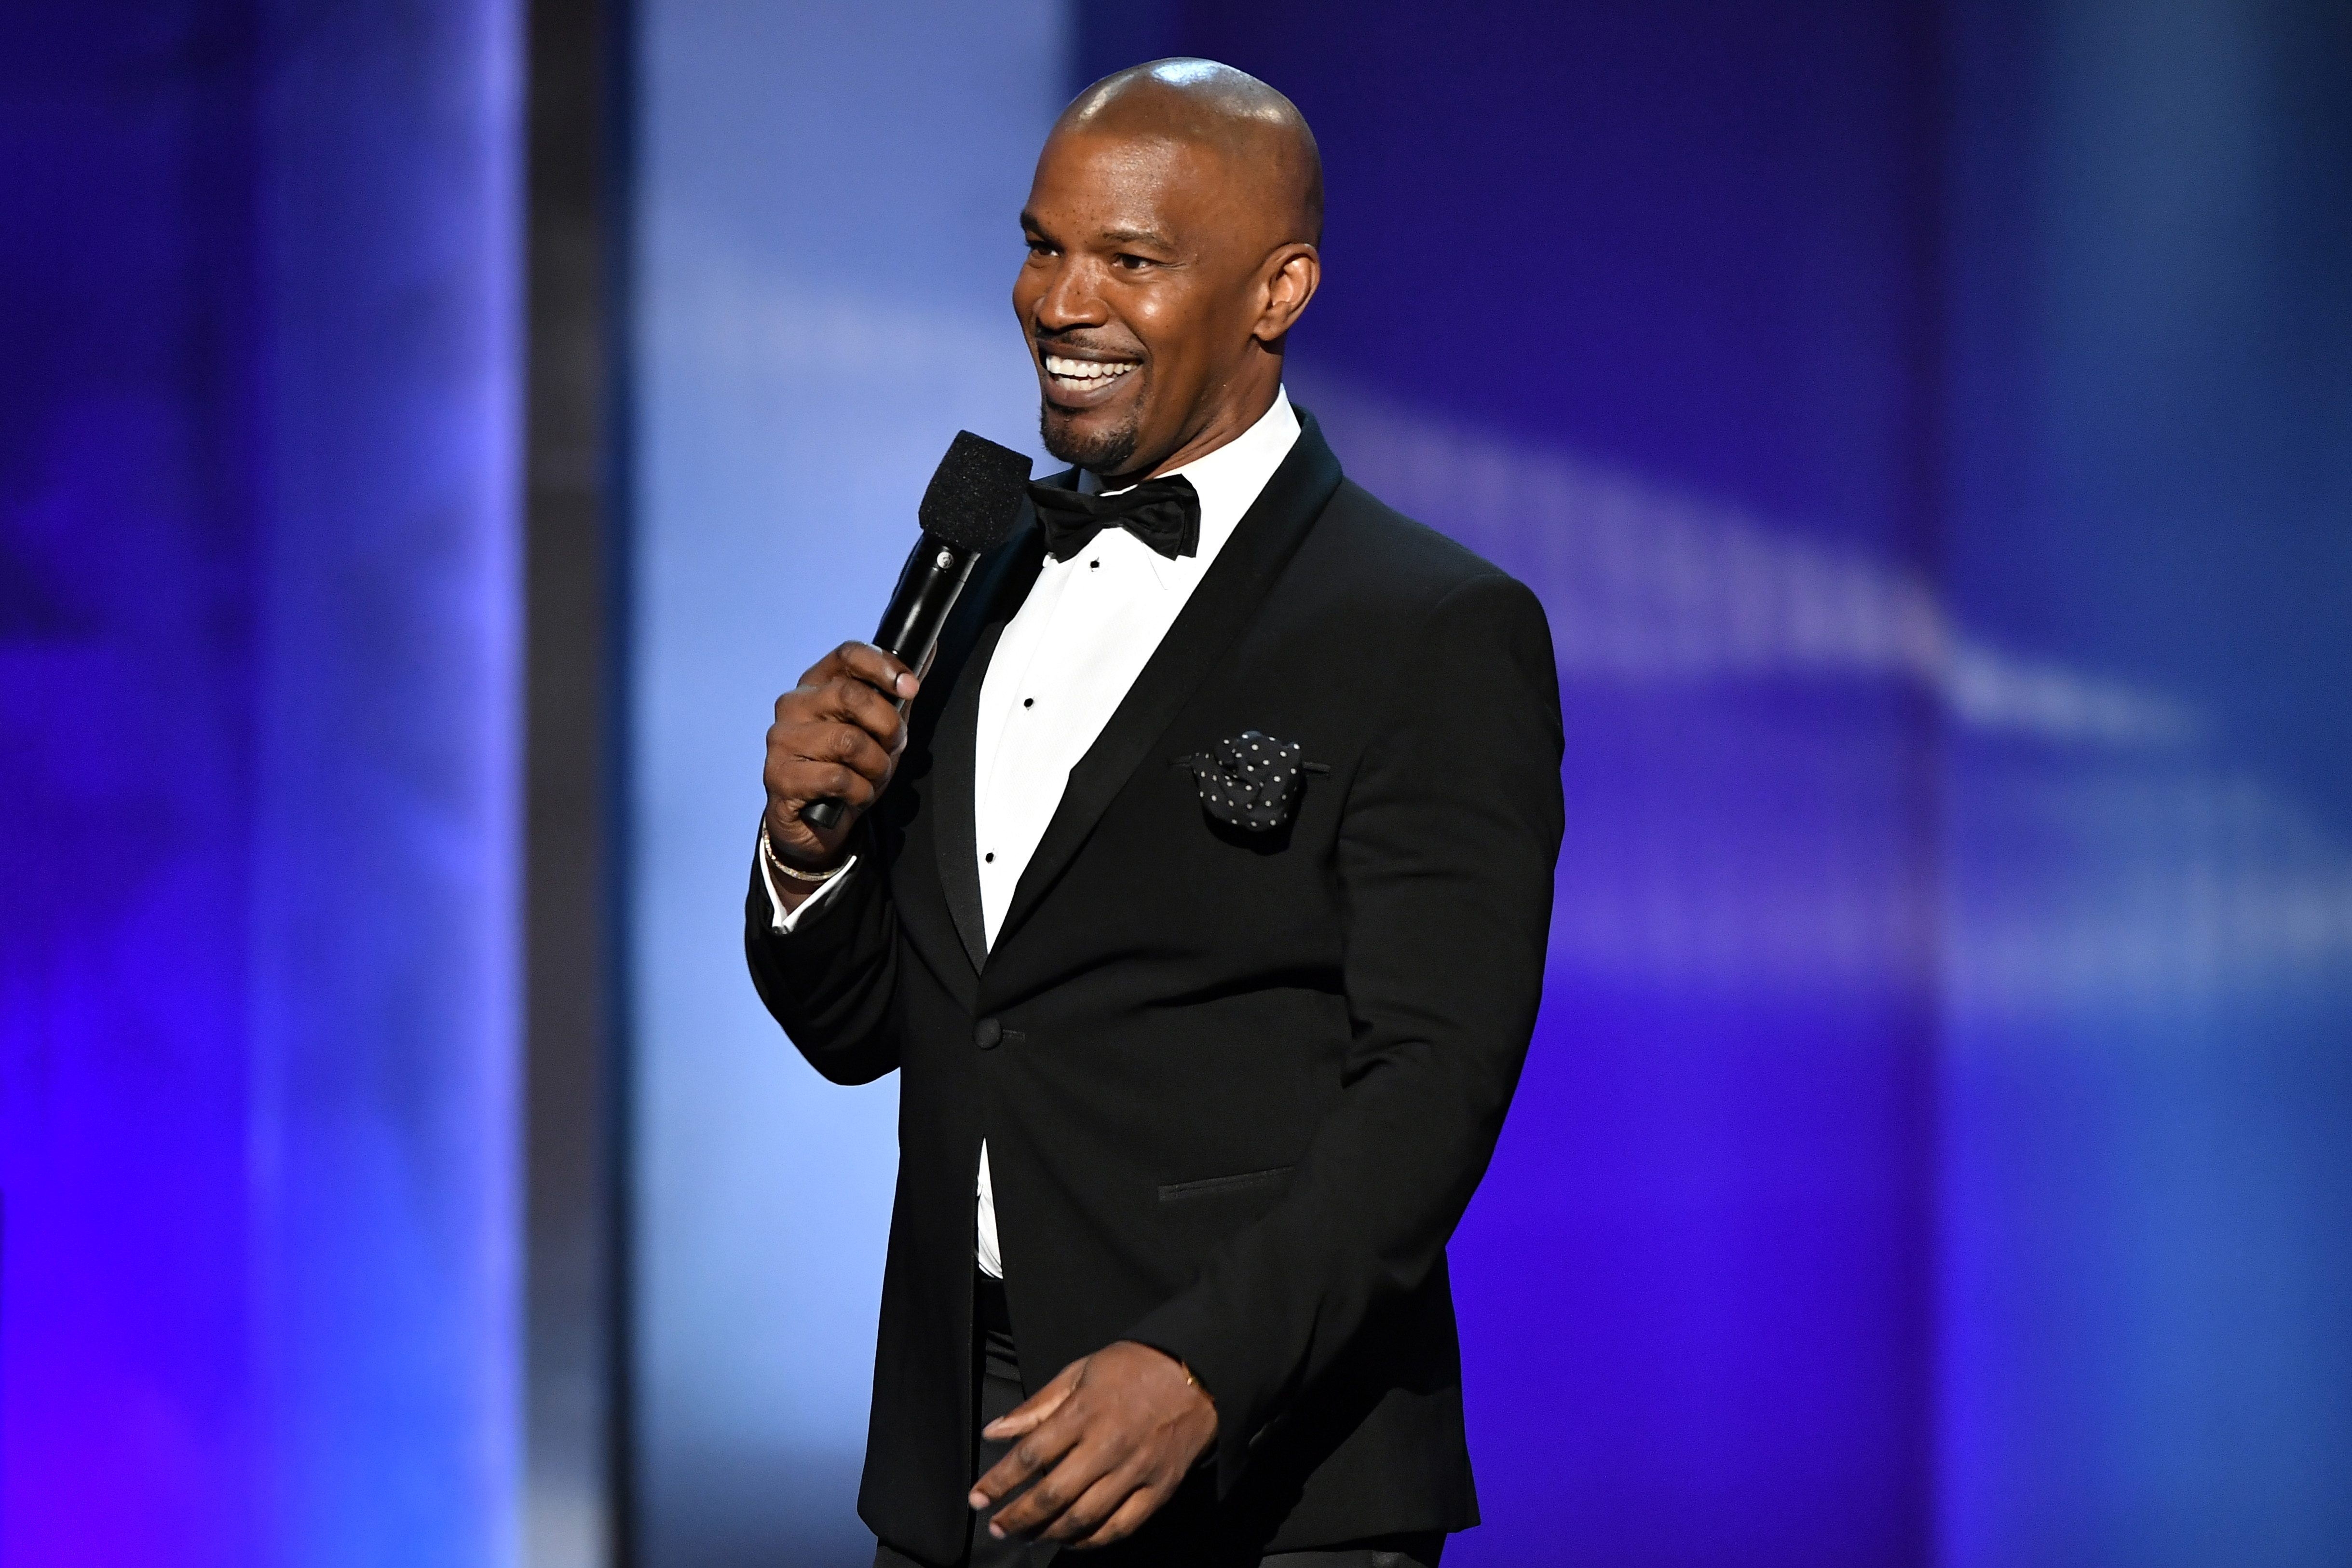 Mandatory Credit: Photo by Rob Latour/Shutterstock (10286629t) Jamie Foxx AFI Honors Denzel Washington, Show, Dolby Theatre, Los Angeles, USA - 06 Jun 2019